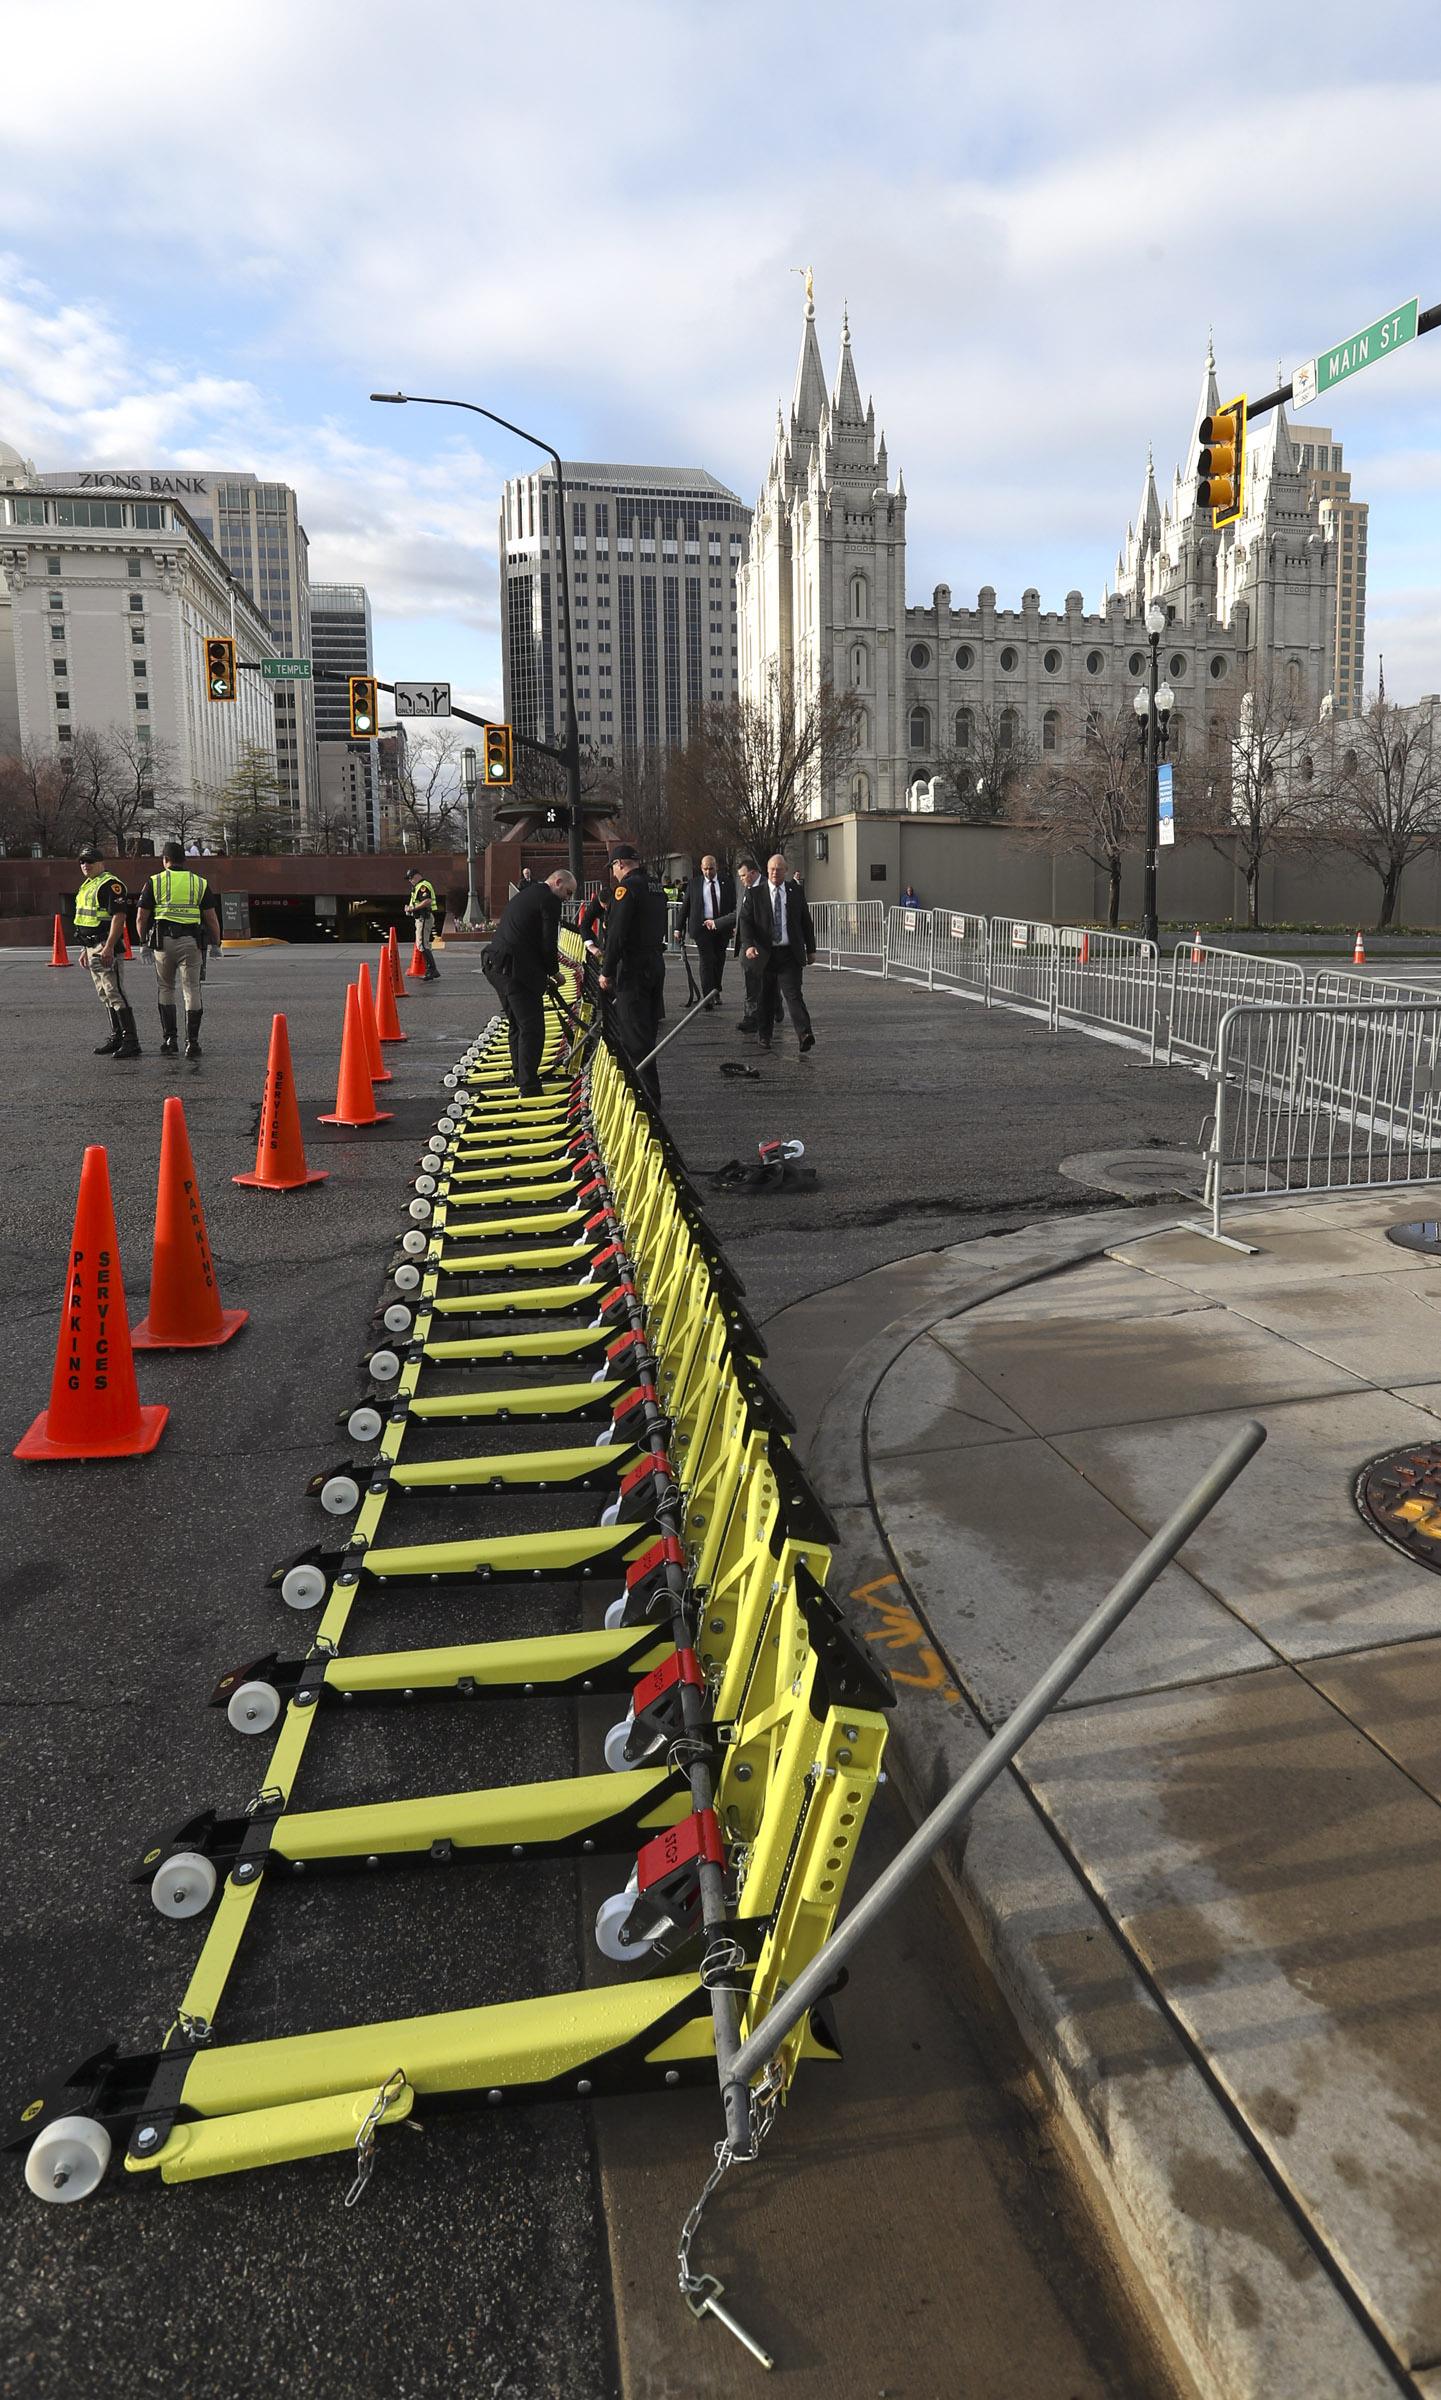 Barricades are installed on South Temple outside the Conference Center before the Saturday morning session of the 189th Annual General Conference of The Church of Jesus Christ of Latter-day Saints in Salt Lake City on Saturday, April 6, 2019.